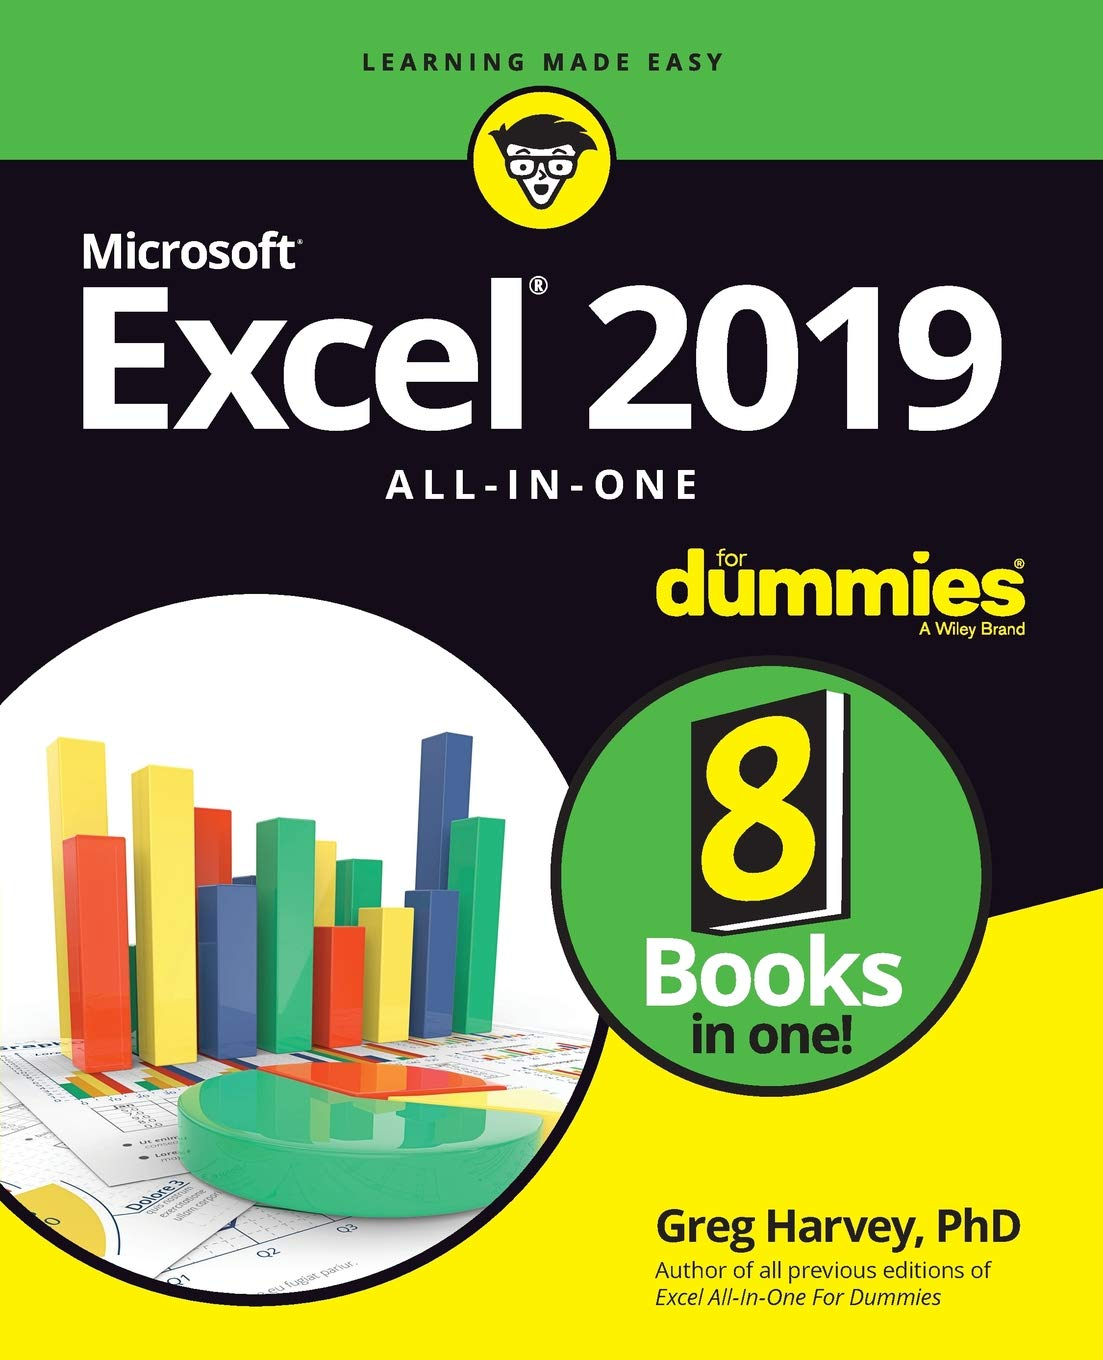 Excel 2019 All-in-One For Dummies by For Dummies